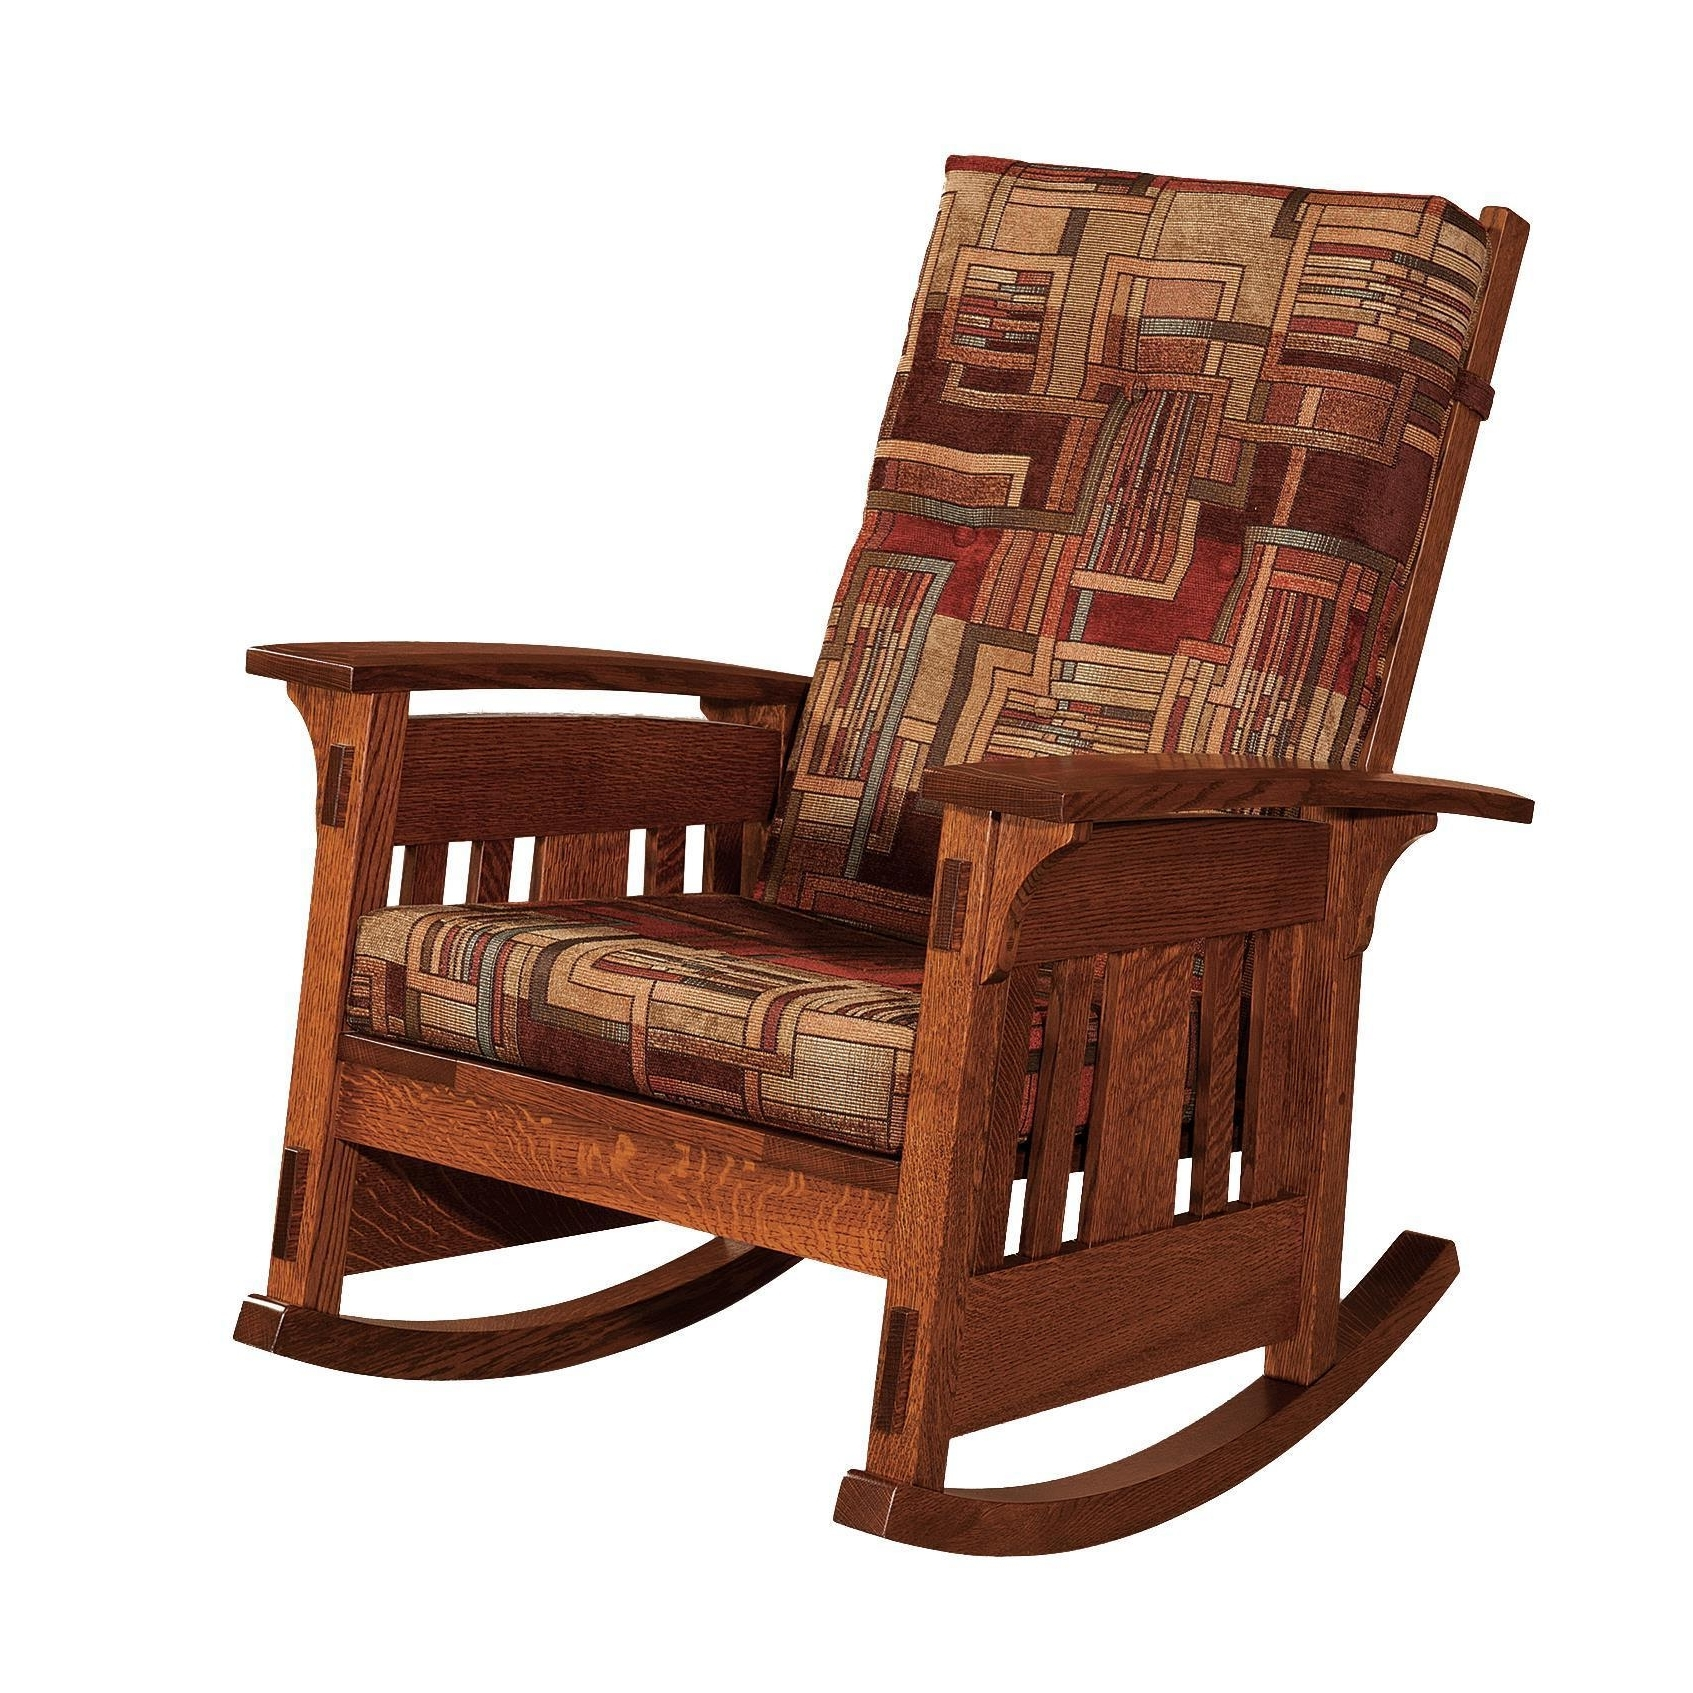 Upholstered Rocking Chairs Pertaining To 2018 Mccoy Mission Upholstered Rocking Chair From Dutchcrafters Amish (Gallery 15 of 20)